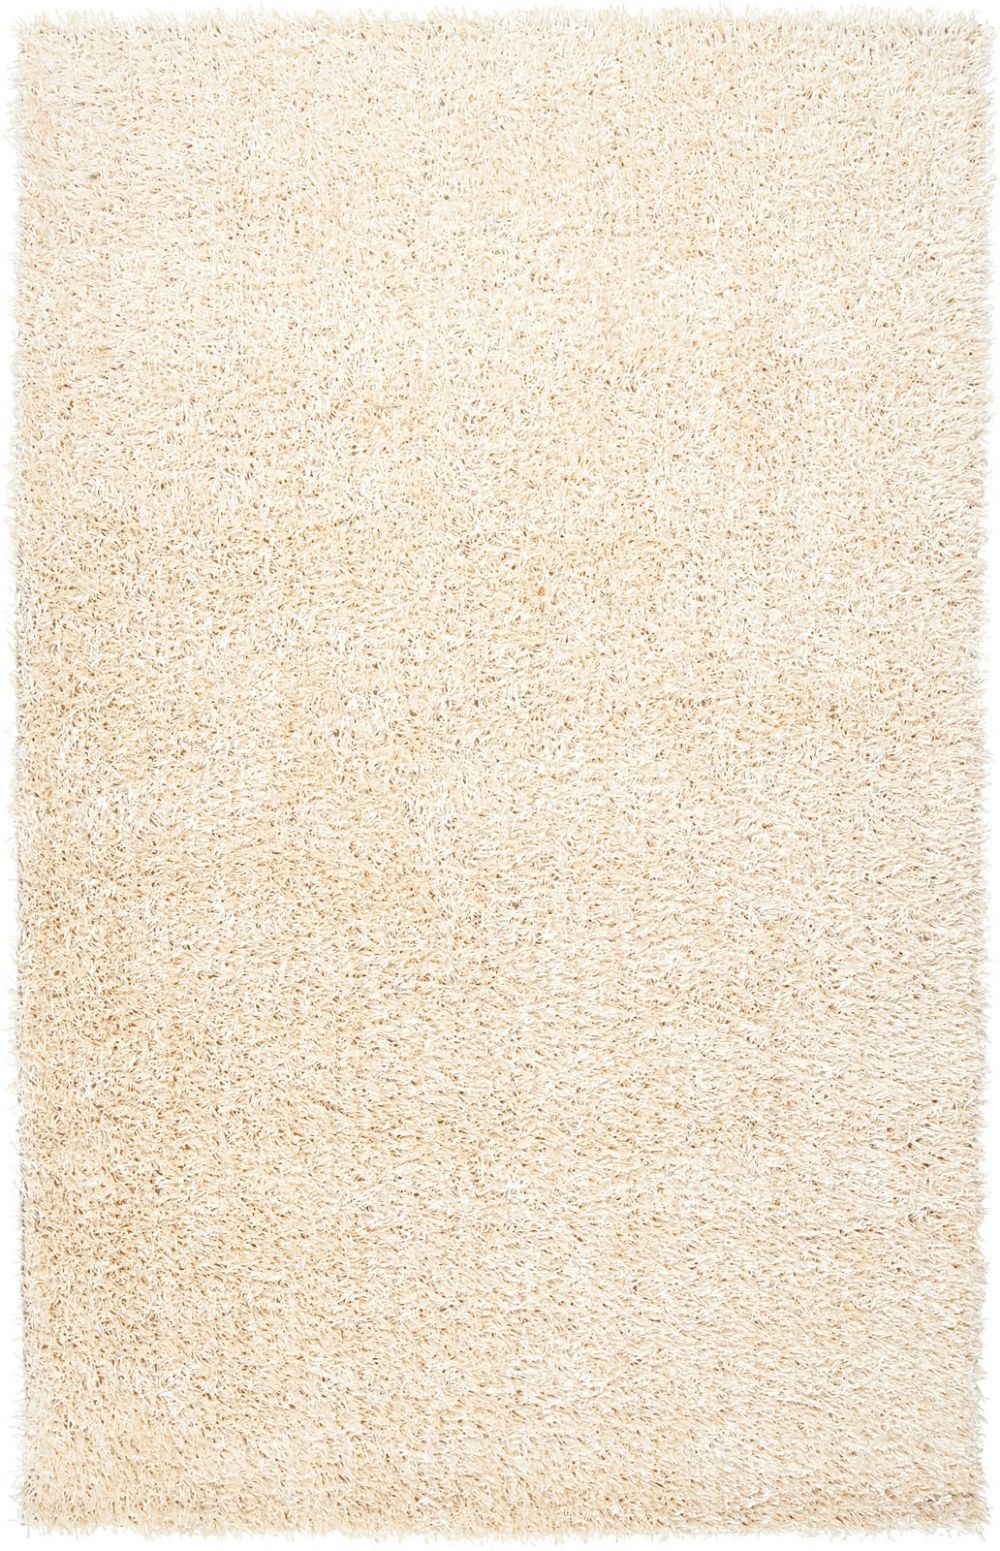 surya nitro plush area rug collection